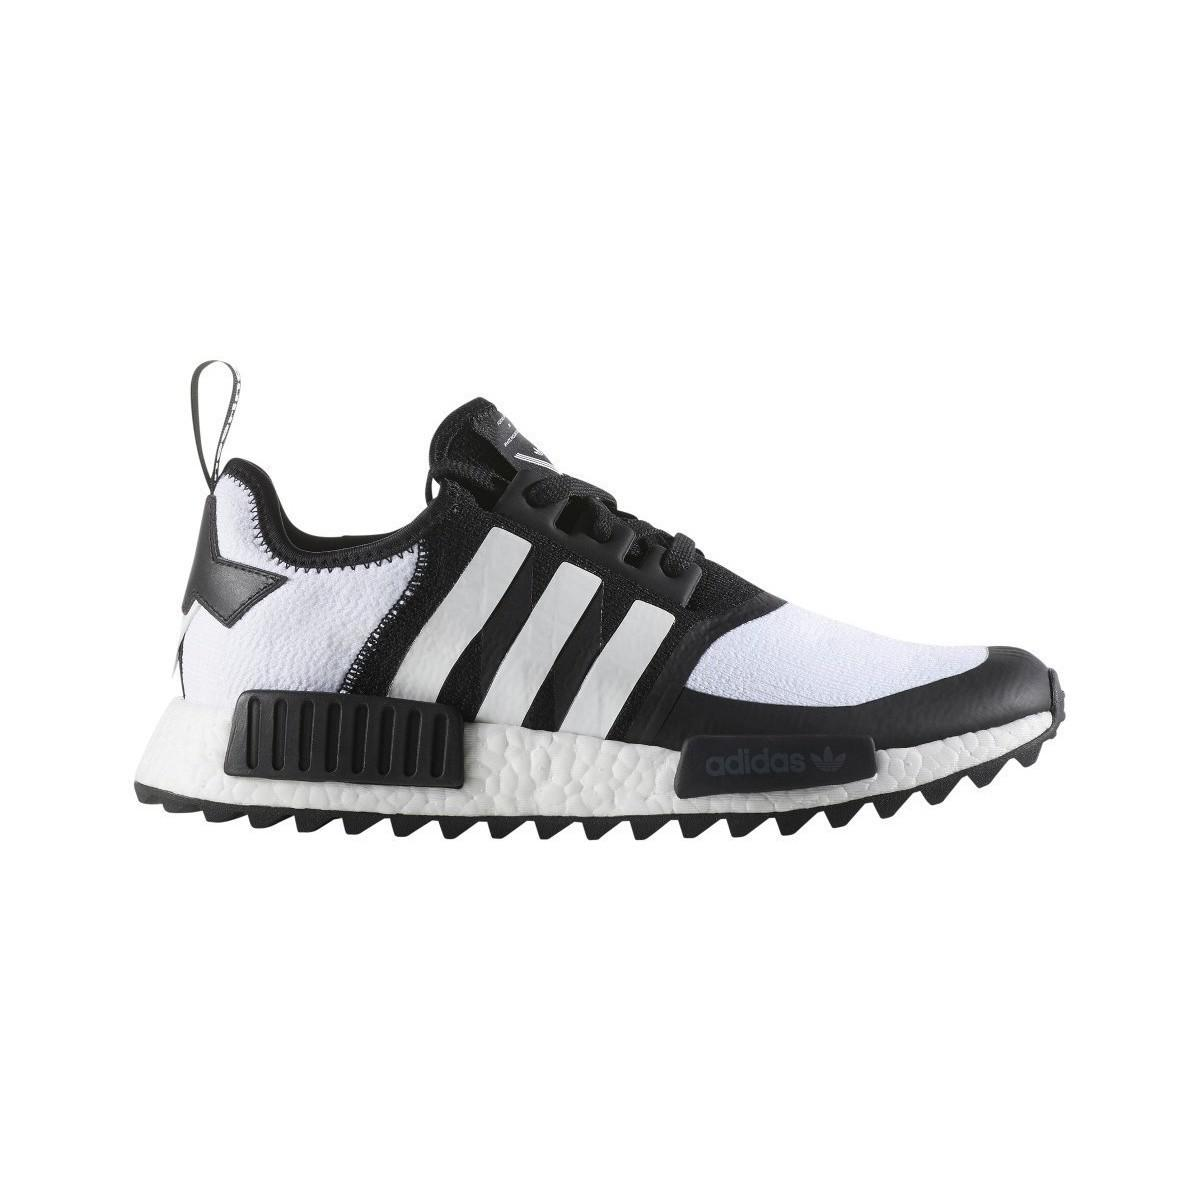 wholesale dealer f8373 068d7 Adidas White Mountaineering Nmd R1 Trail Primeknit Men s Mid Boots ...